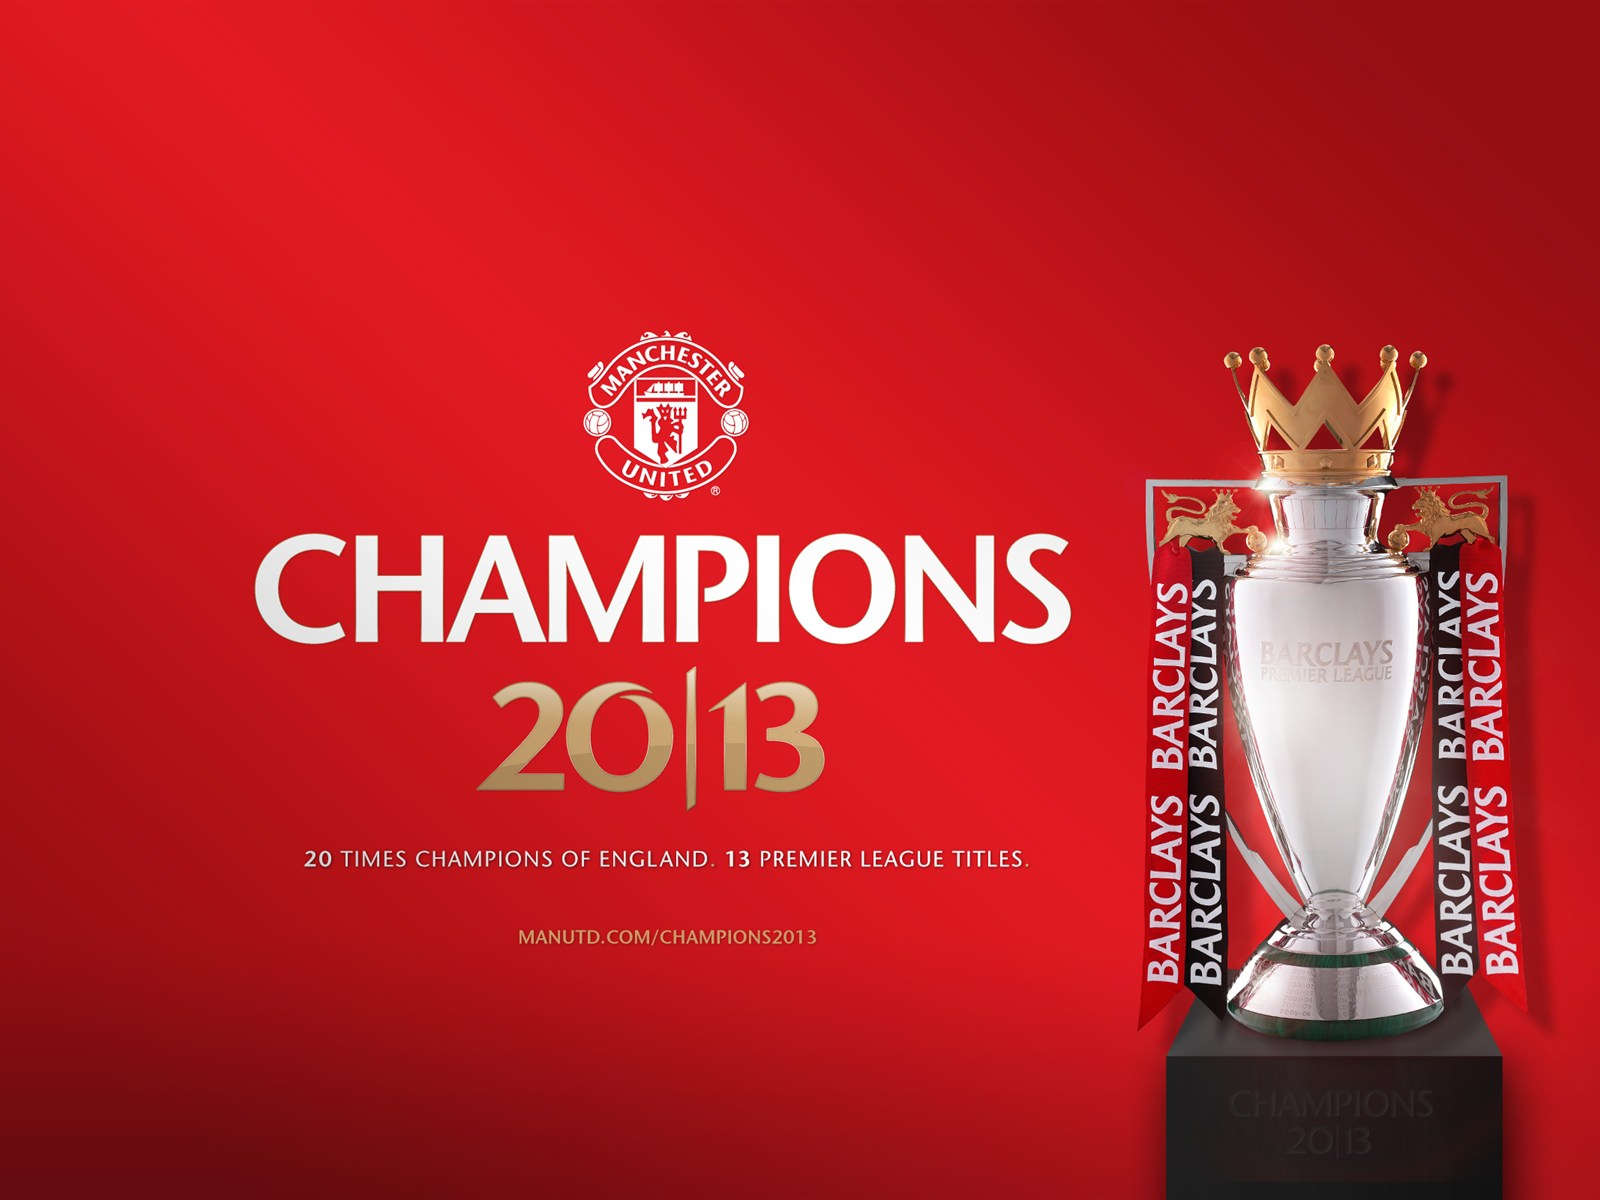 Manchester united 20 times champions of england celebration manchester united champions celebration wallpaper voltagebd Gallery